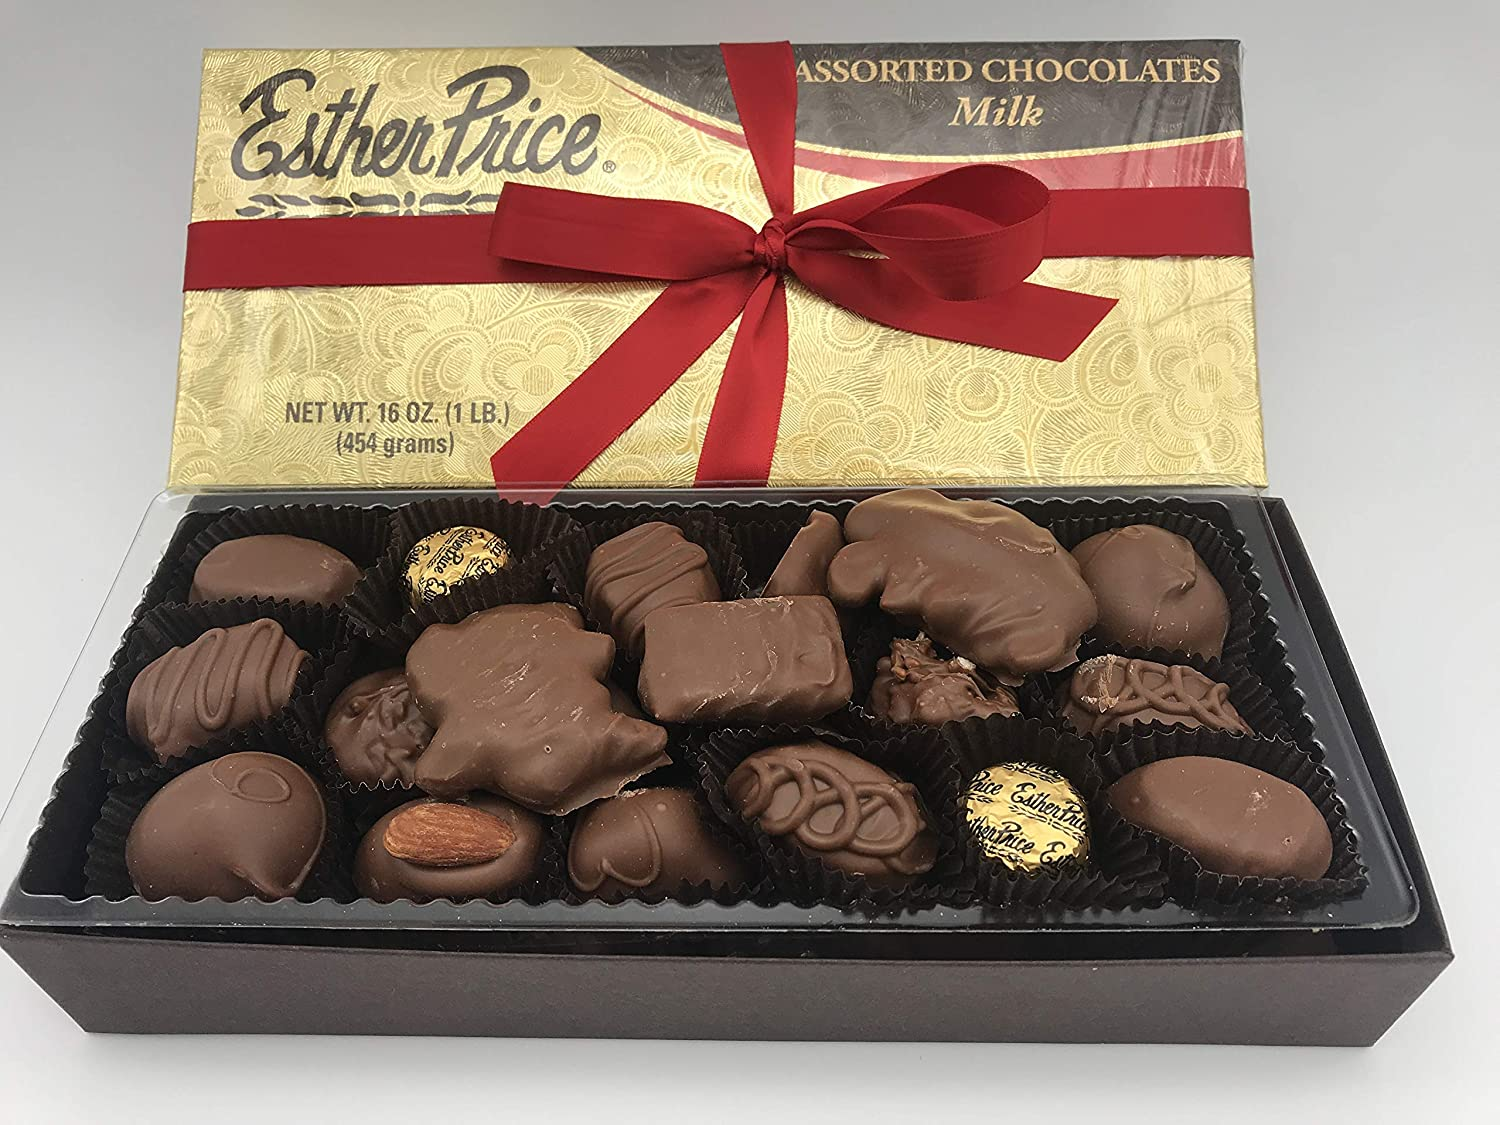 Amazon.com : Esther Price Assorted Milk Chocolates : Chocolate Assortments  And Samplers : Grocery & Gourmet Food